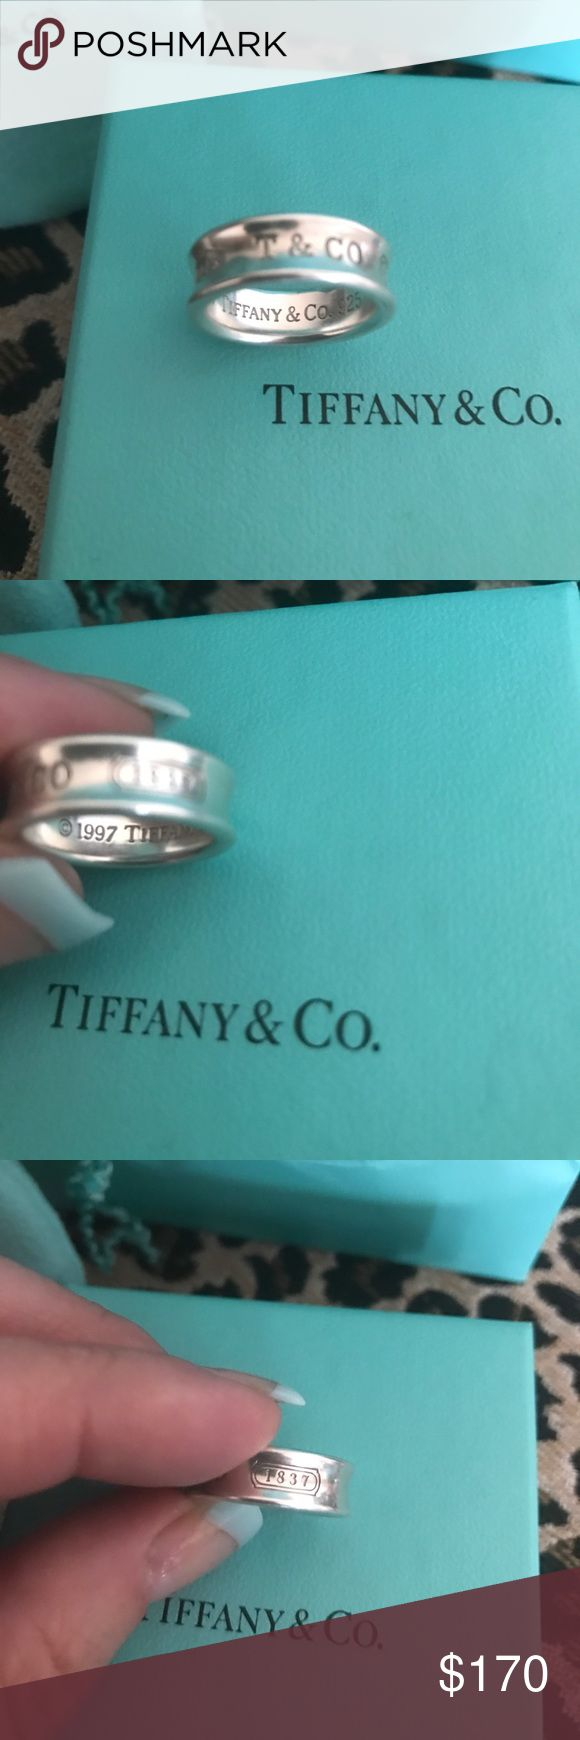 Magnificent 1837 stamped Tiffany and Company ring Authentic and very new!! It was a recent Mother's Day gift and I recently acquired it &  it fits too tight on me and now I would love to pass it on this way through Poshmark ..I hate to part with this one. Tiffanys soft silver and beautiful light color just feels magical on your hand. Size 6 and I have original box or pouch, case as I am a buyer and seller of authentic Tiffany jewelry stay posted more to come and make offers bundle etc…